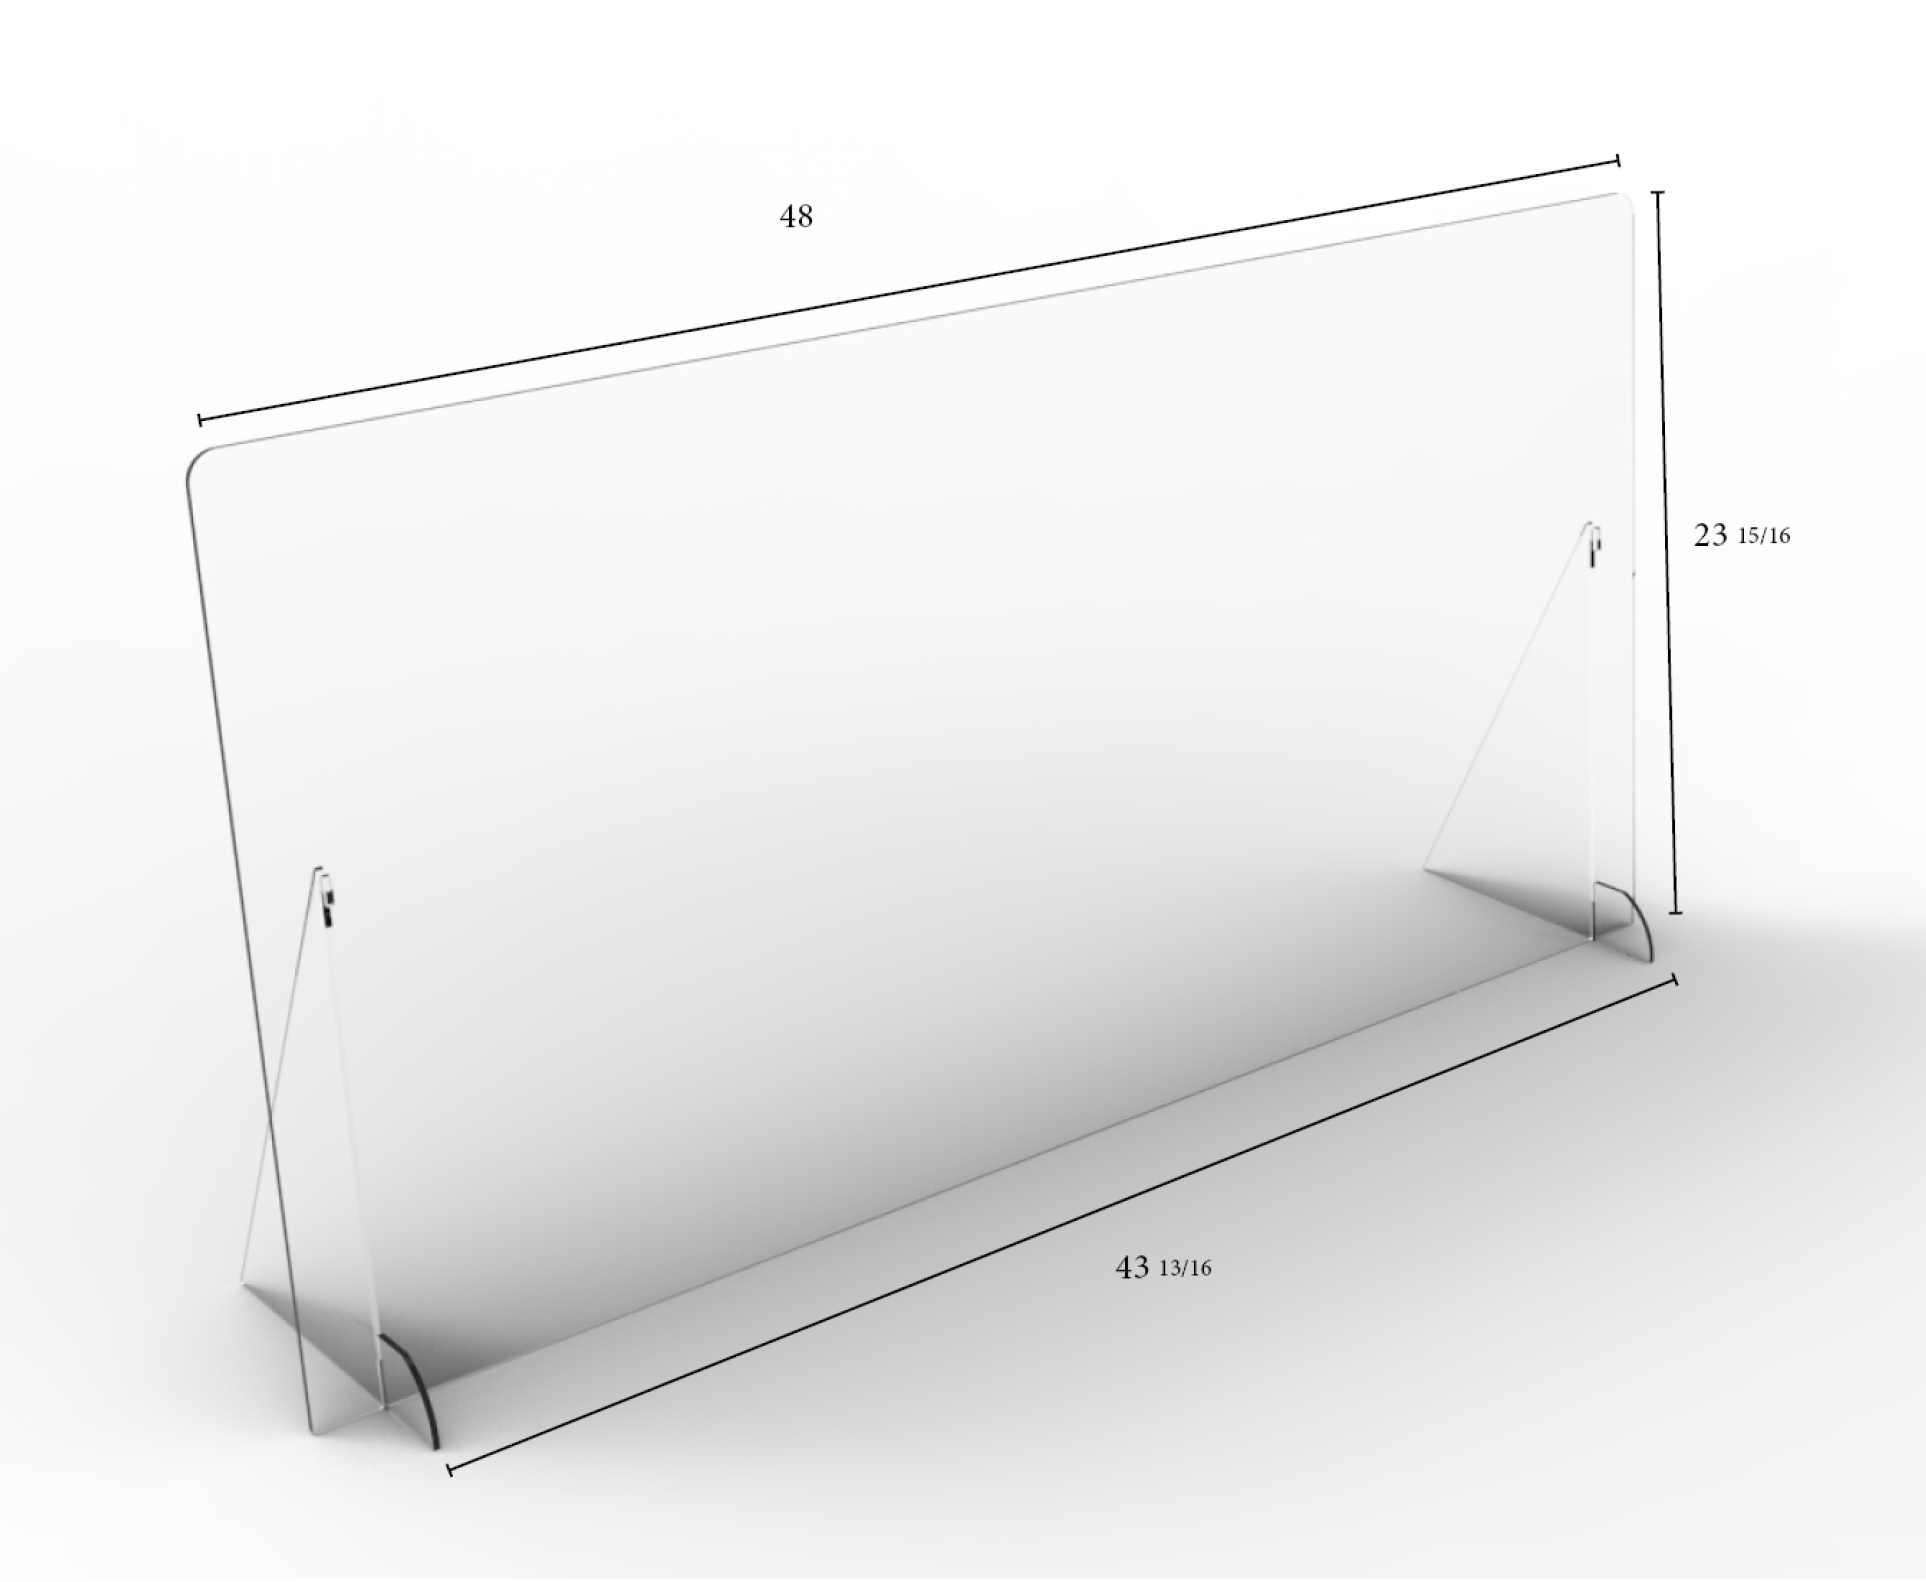 "Solid Angled Clear Protective Shield - 48"" W x 24"" H 